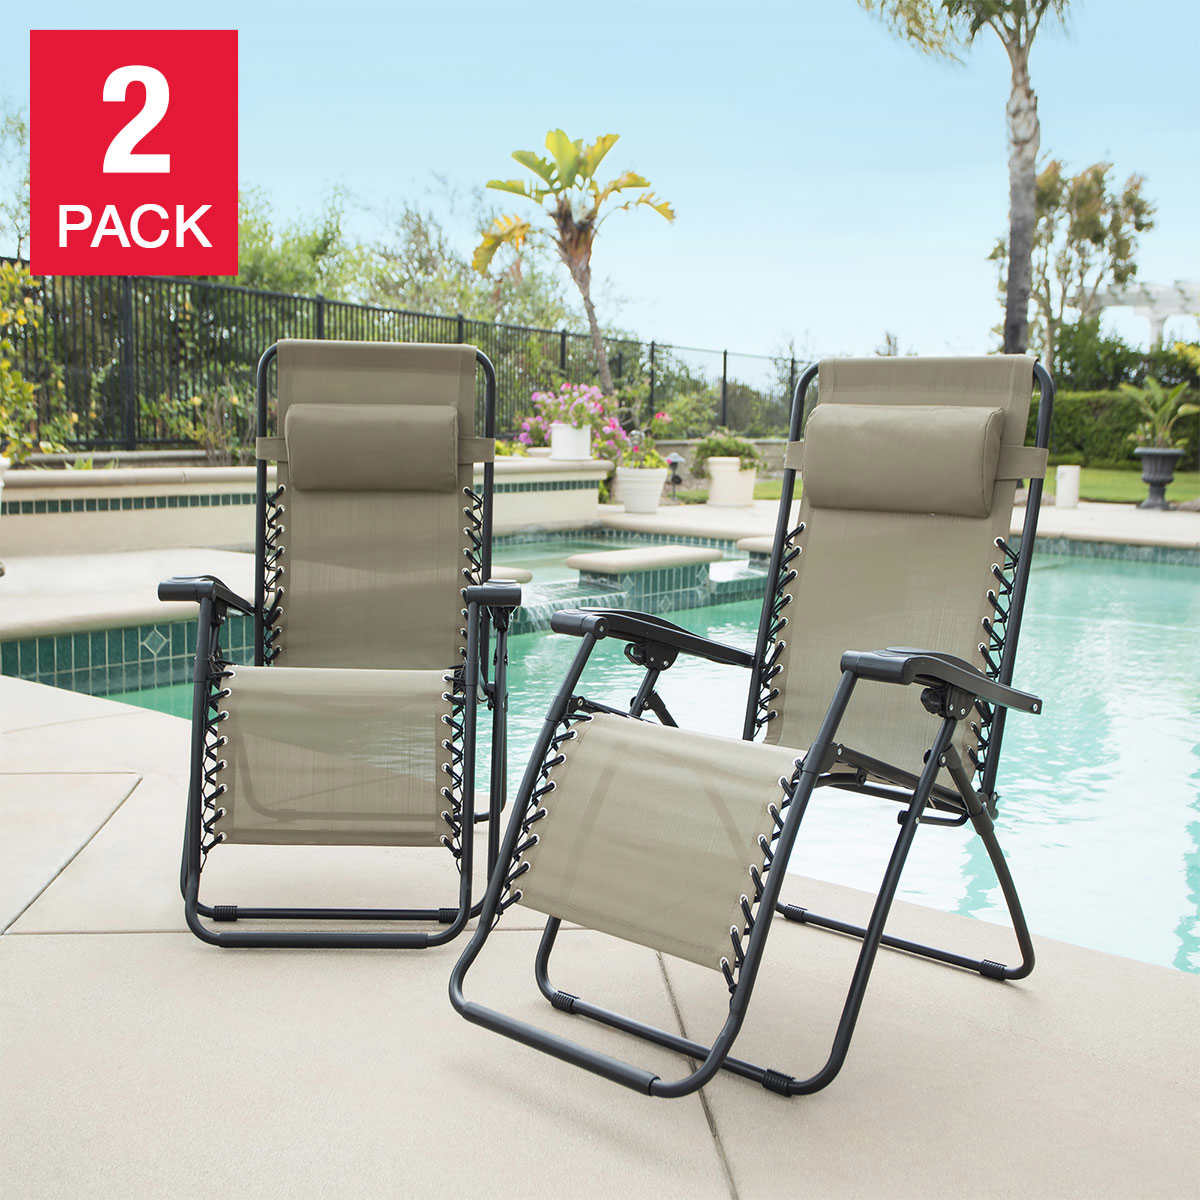 Zero Gravity Outdoor Lounge Chair Zero Gravity Reclining Outdoor Lounge Chair 2 Pack